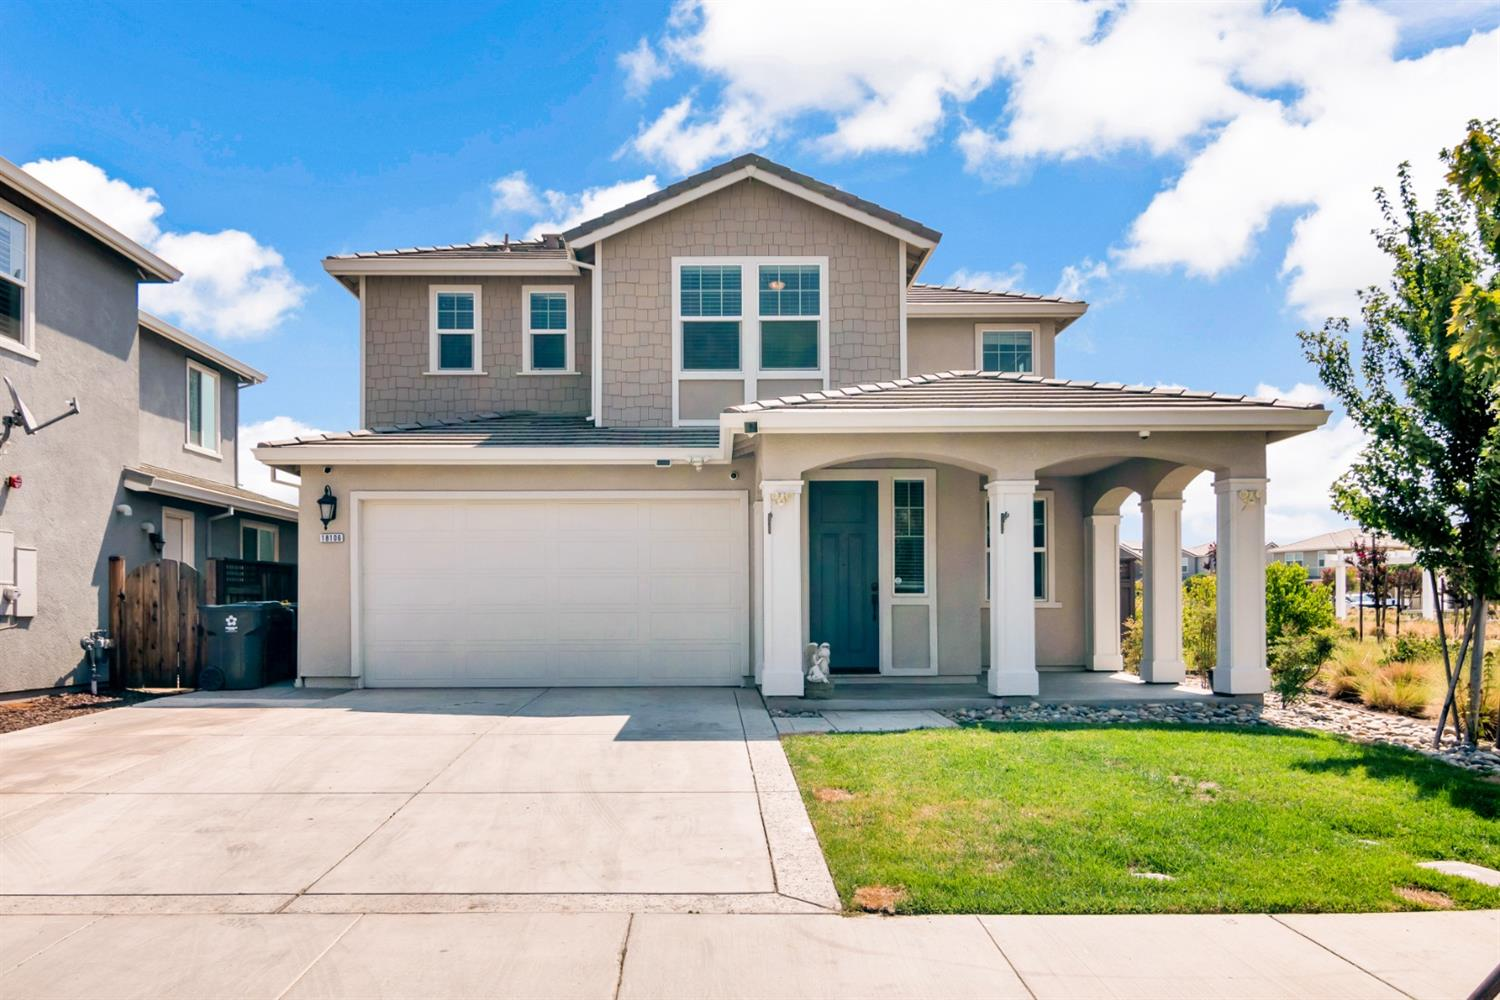 Spectacular River Island Lake Font Home with Lake Private Dock.  This Stylishly updated Lake Front home in a can be yours..  Large spacious floor plan, Solar, $10k whole house water purification system, No HOA's, Great Schools.  Beautiful upstairs office and Master bedroom with amazing views.. This will go fast so waste no time to take a look at the beautiful Gem...